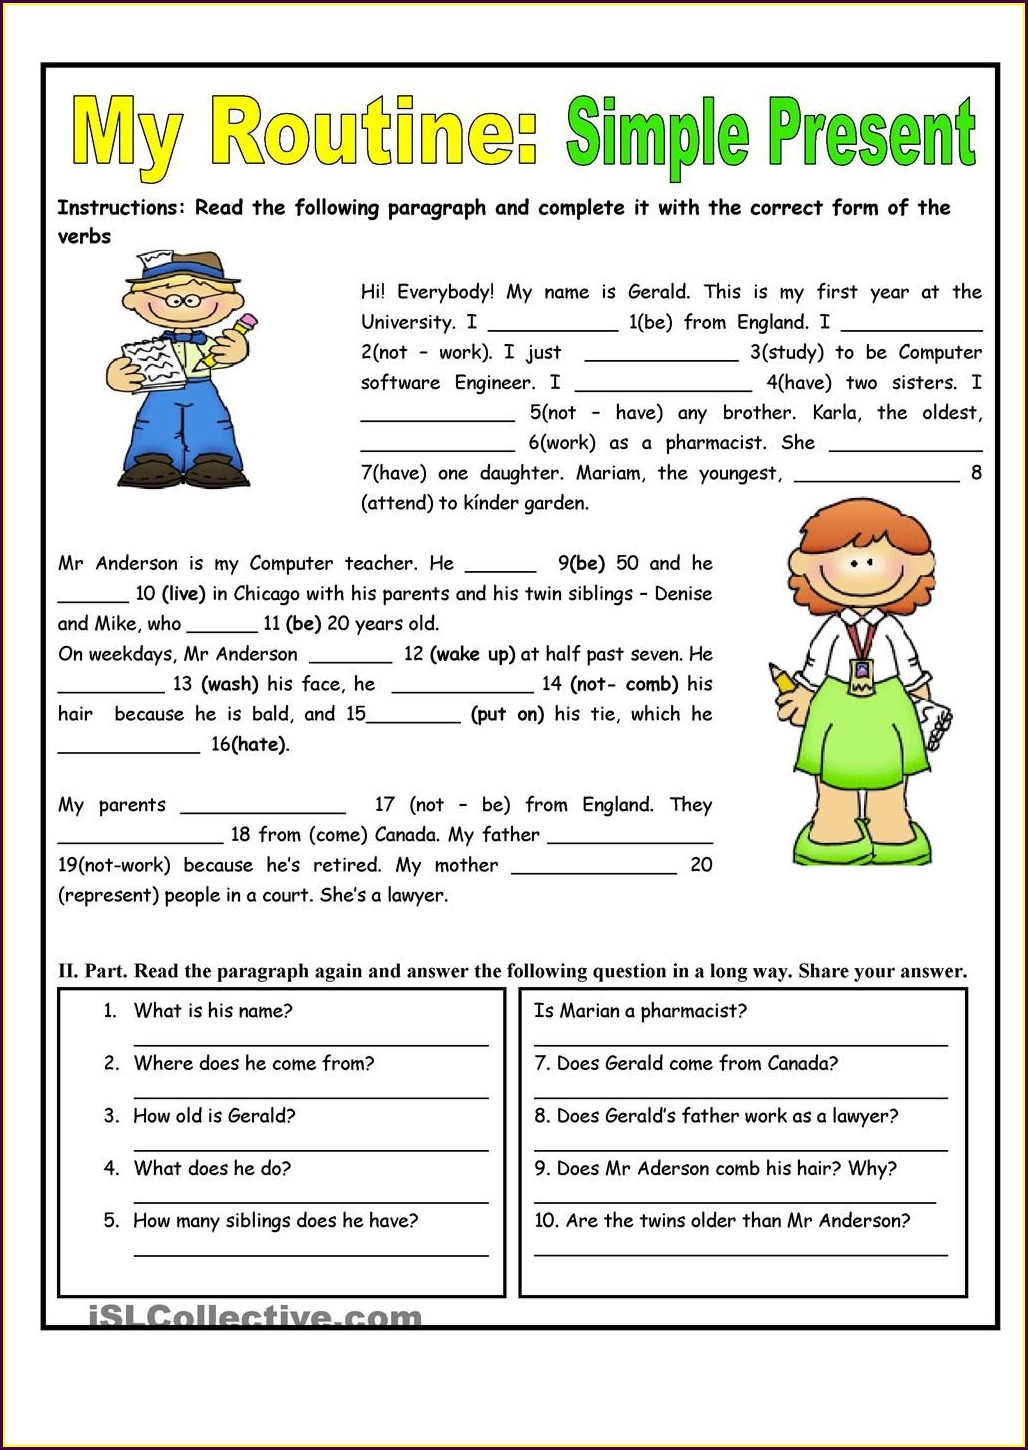 English Simple Present Tense Worksheet